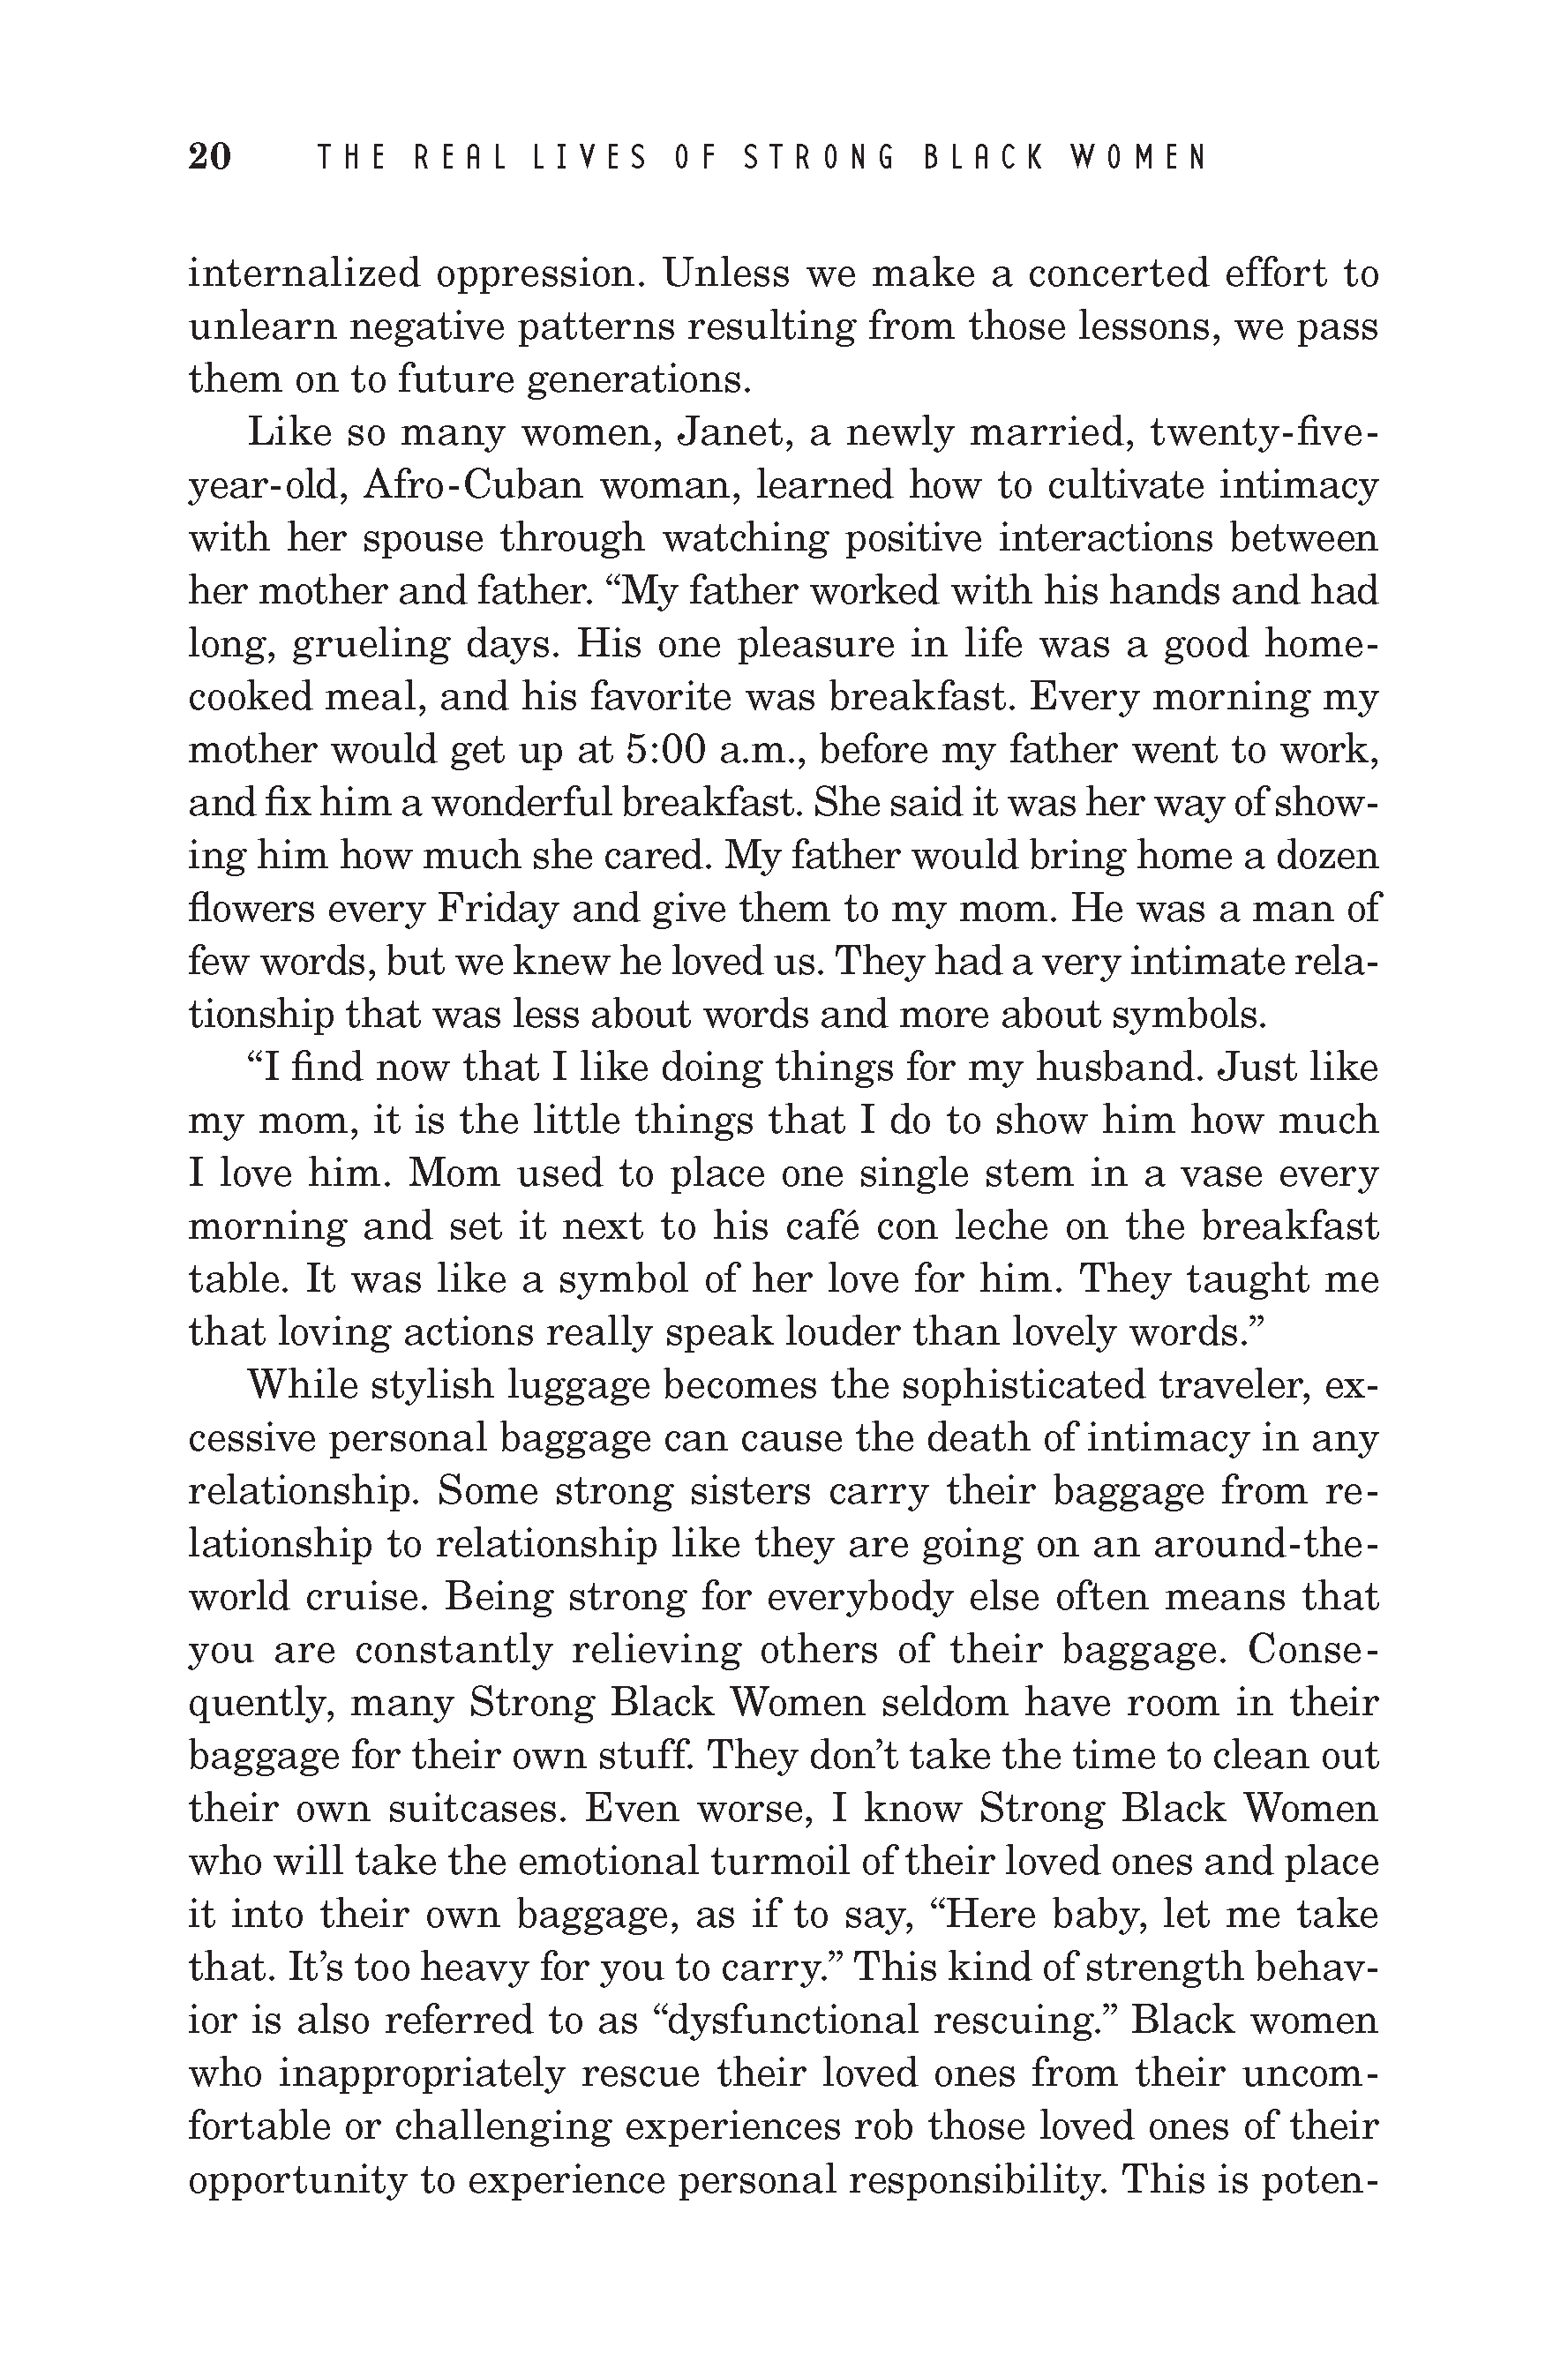 Real Lives of Strong Black Women_Page_06.png